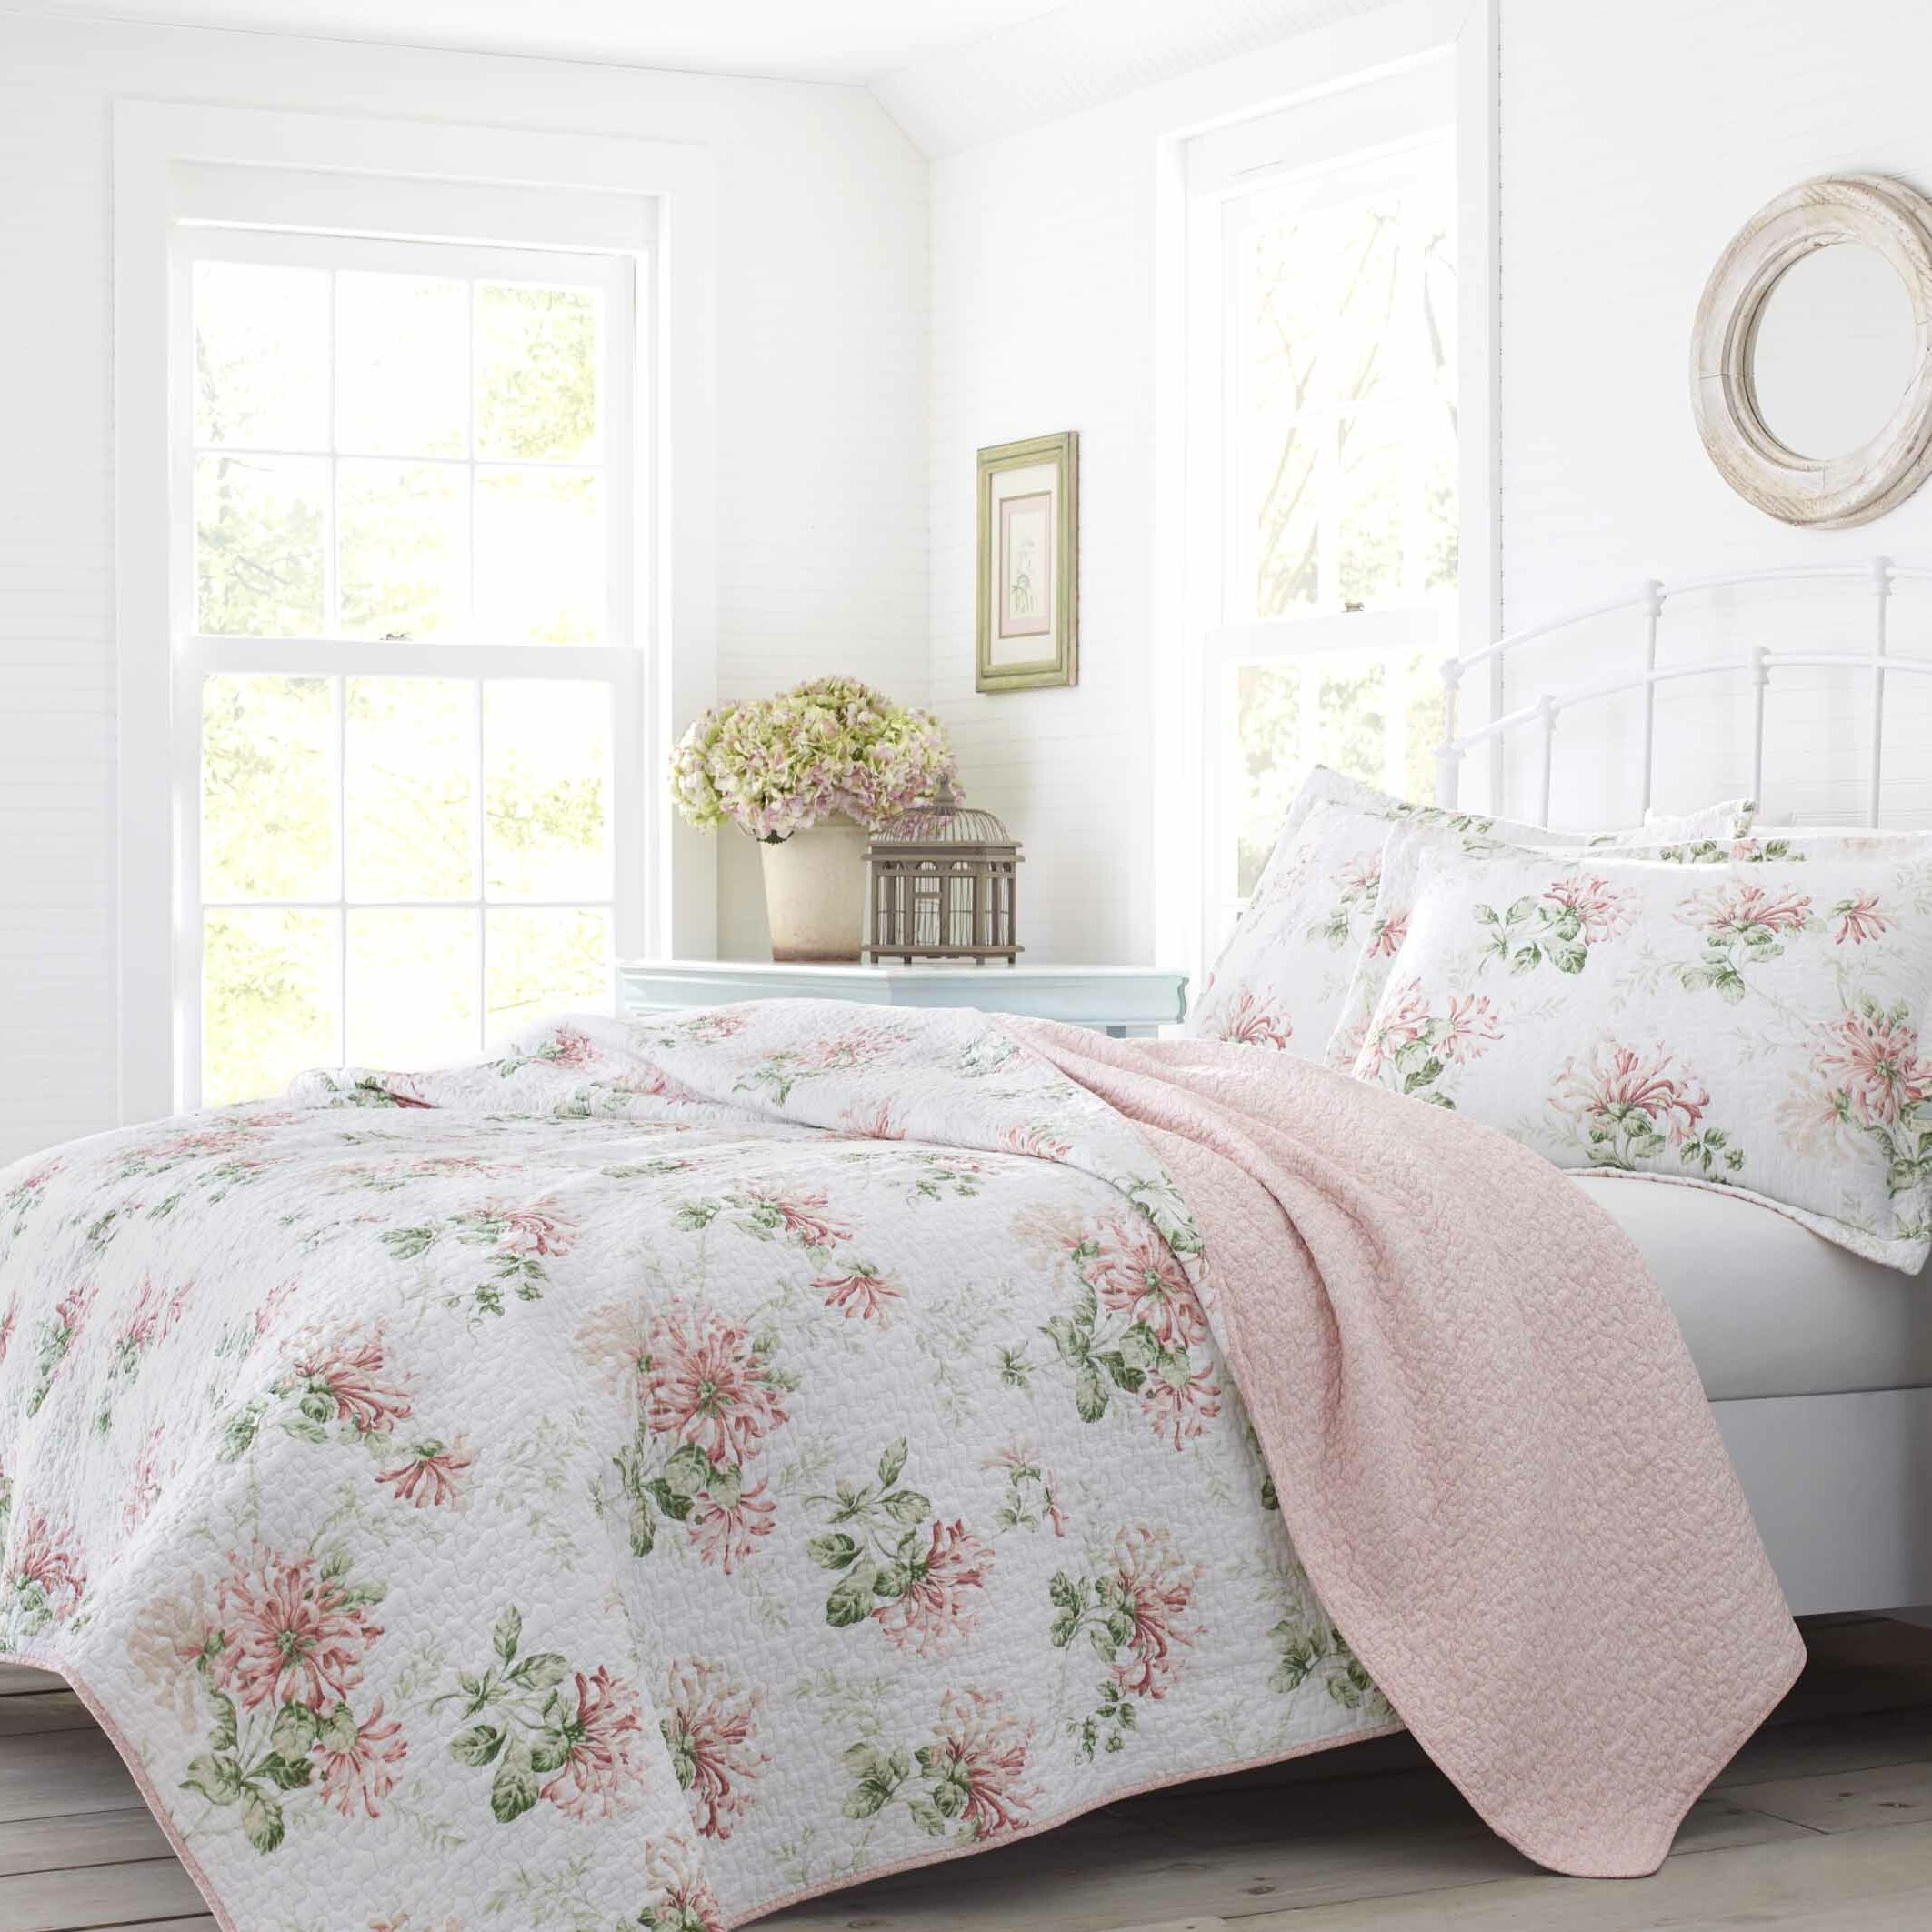 Miraculous Honeysuckle Cotton Reversible Quilt Set By Laura Ashley Home Download Free Architecture Designs Scobabritishbridgeorg